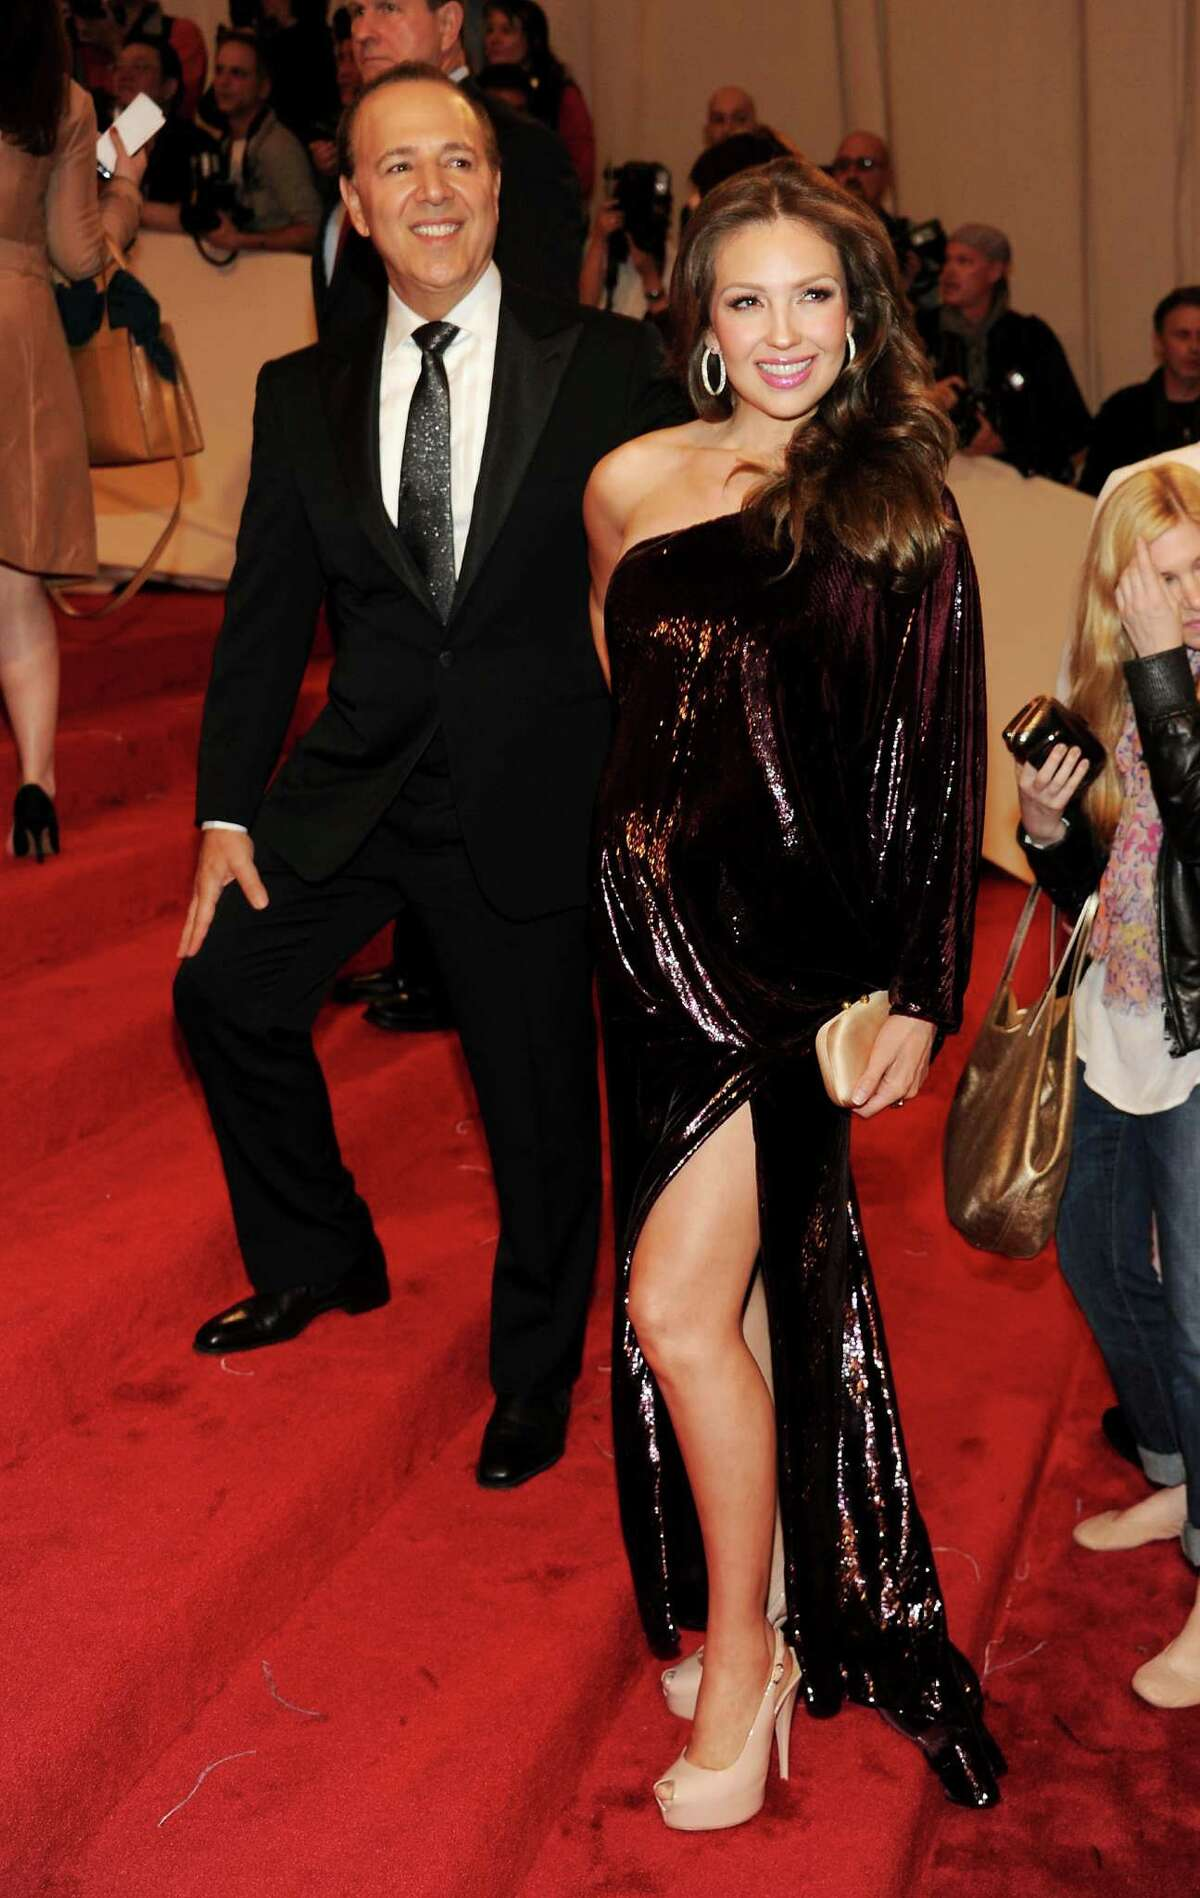 """Tommy Mottola and Thalia attend the """"Alexander McQueen: Savage Beauty"""" Costume Institute Gala at The Metropolitan Museum of Art in May 2011. (Photo by Larry Busacca/Getty Images)"""